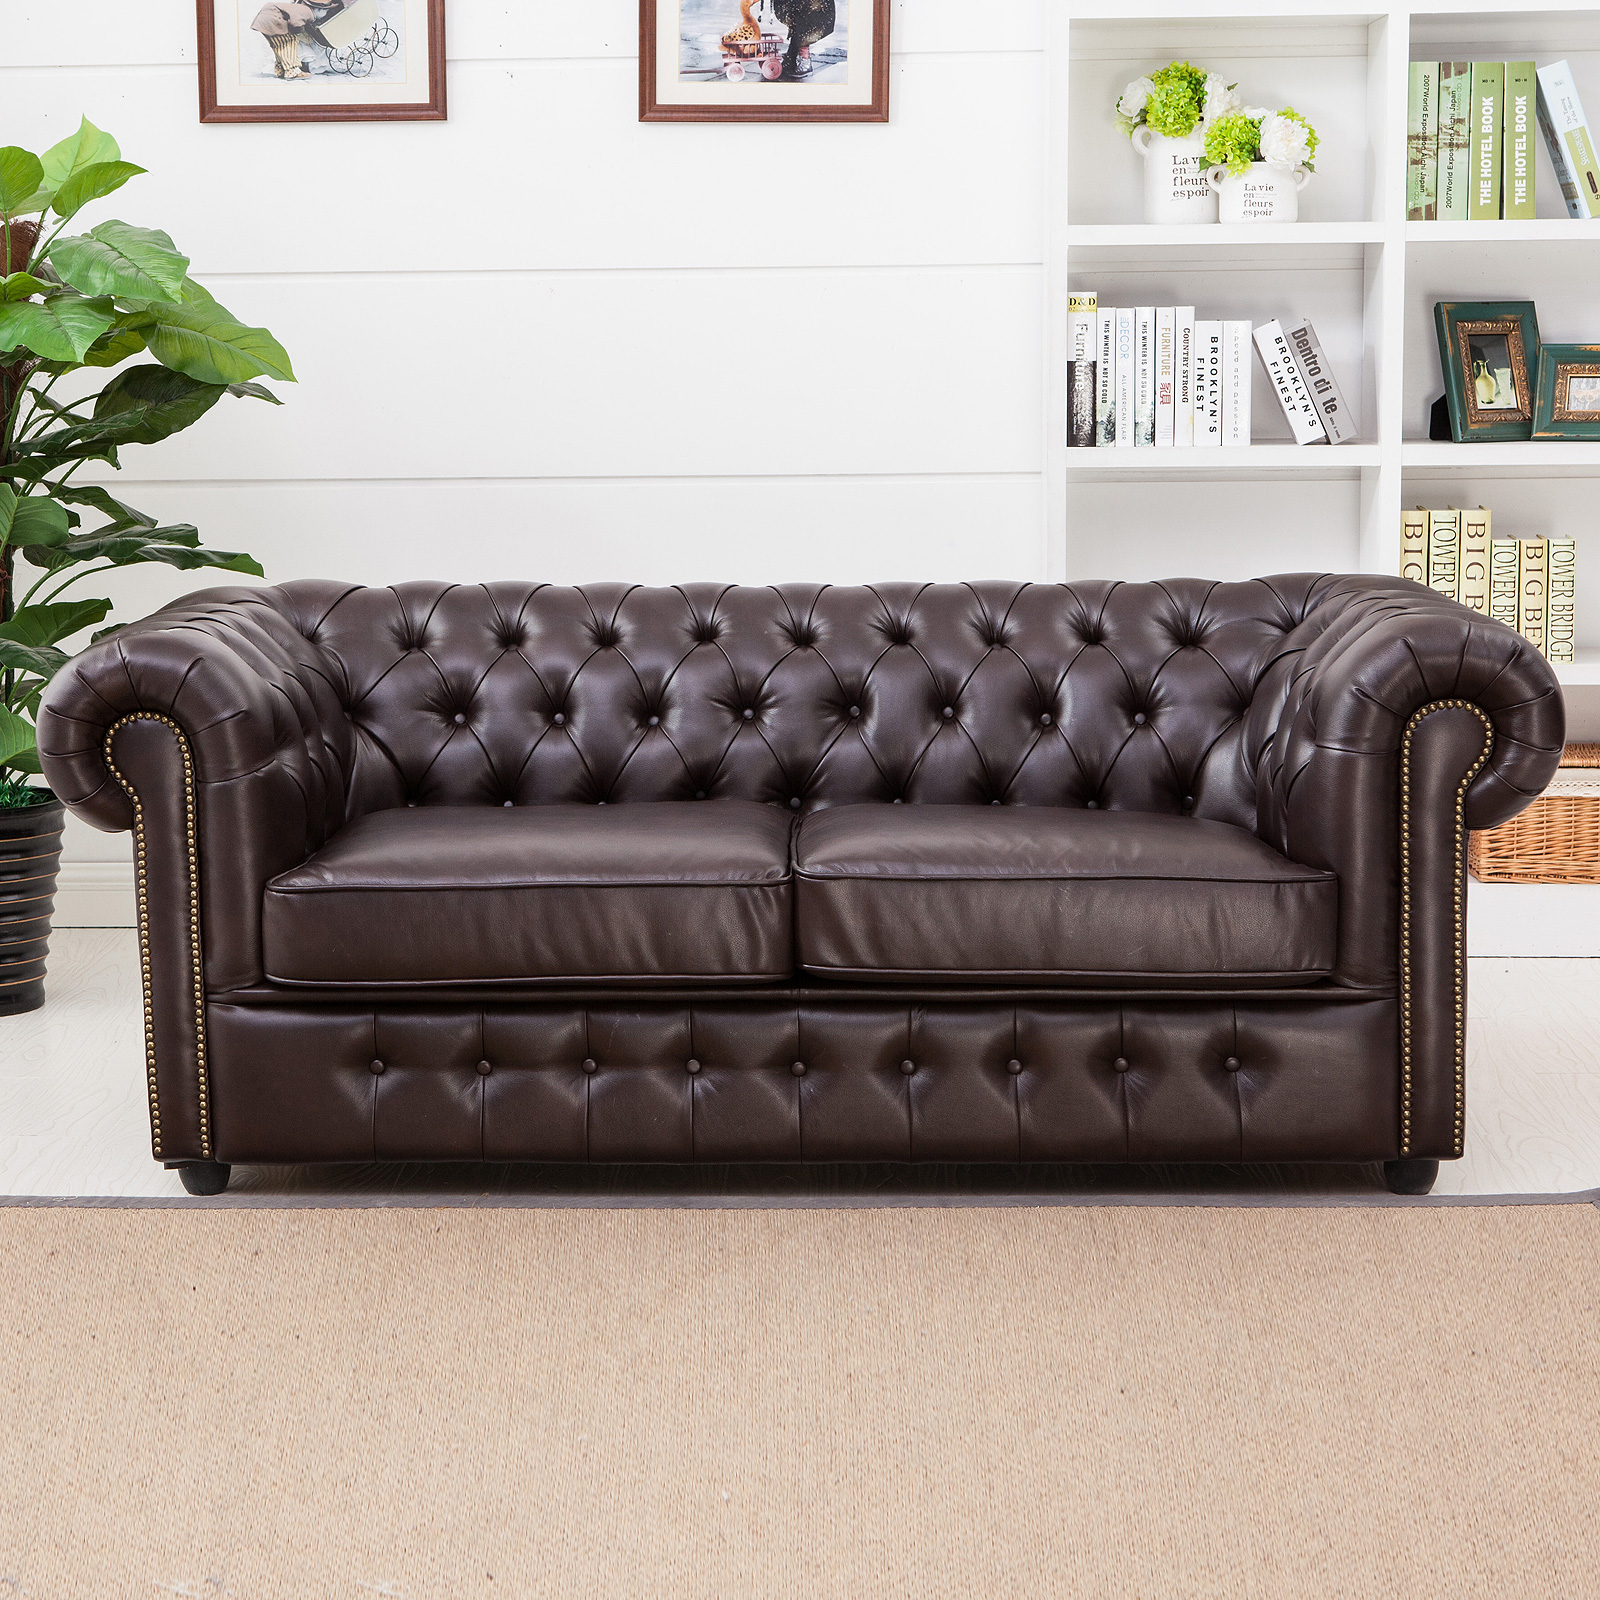 chesterfield sofa gebraucht. Black Bedroom Furniture Sets. Home Design Ideas